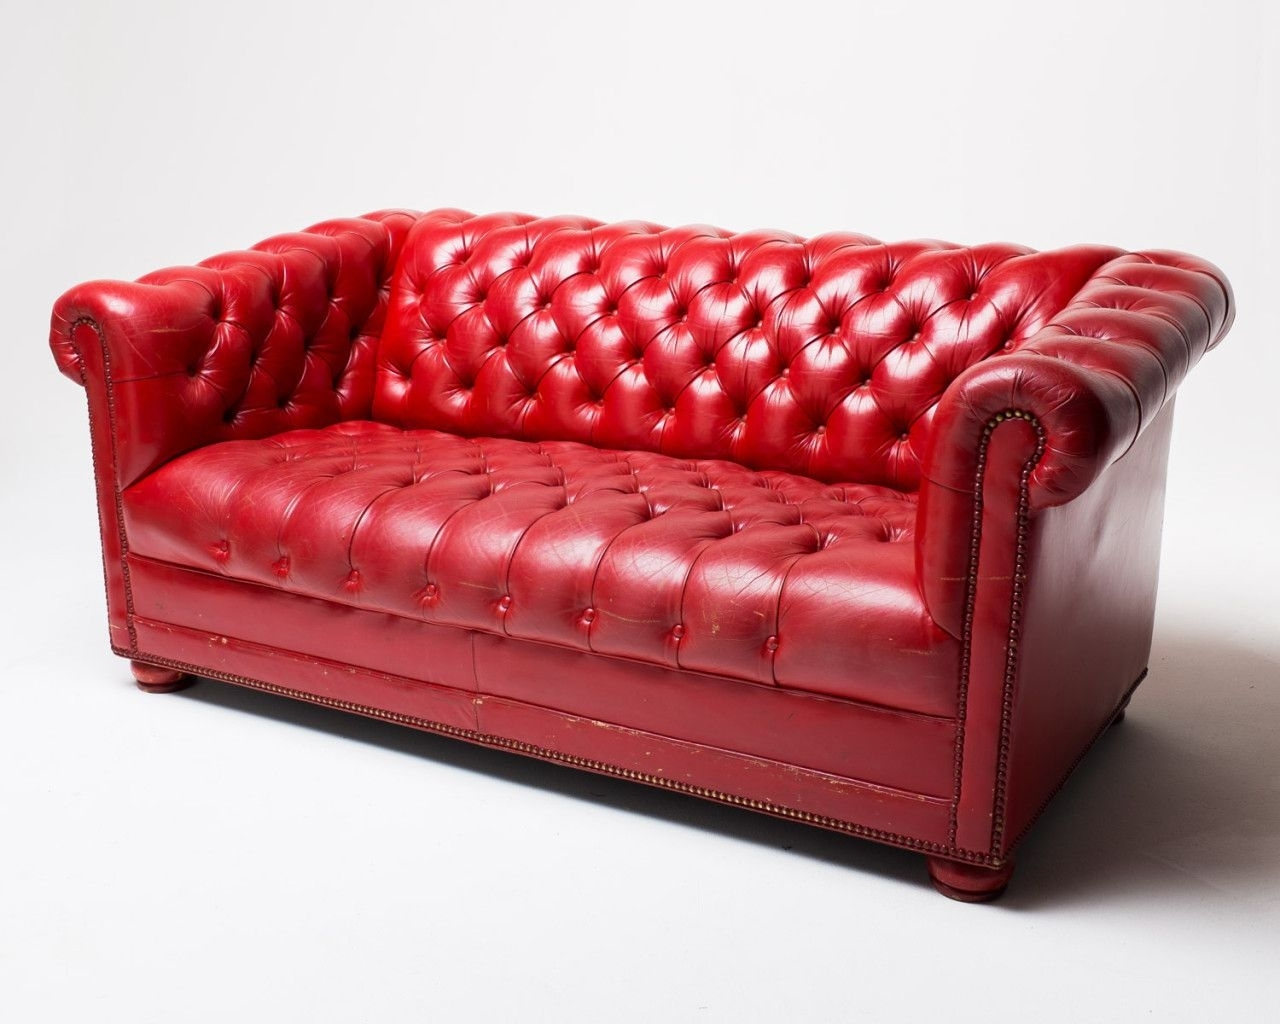 Incredible Co Red Leather Sofa Acme Studio Picture Of Inspiration regarding Red Leather Couches (Image 6 of 15)